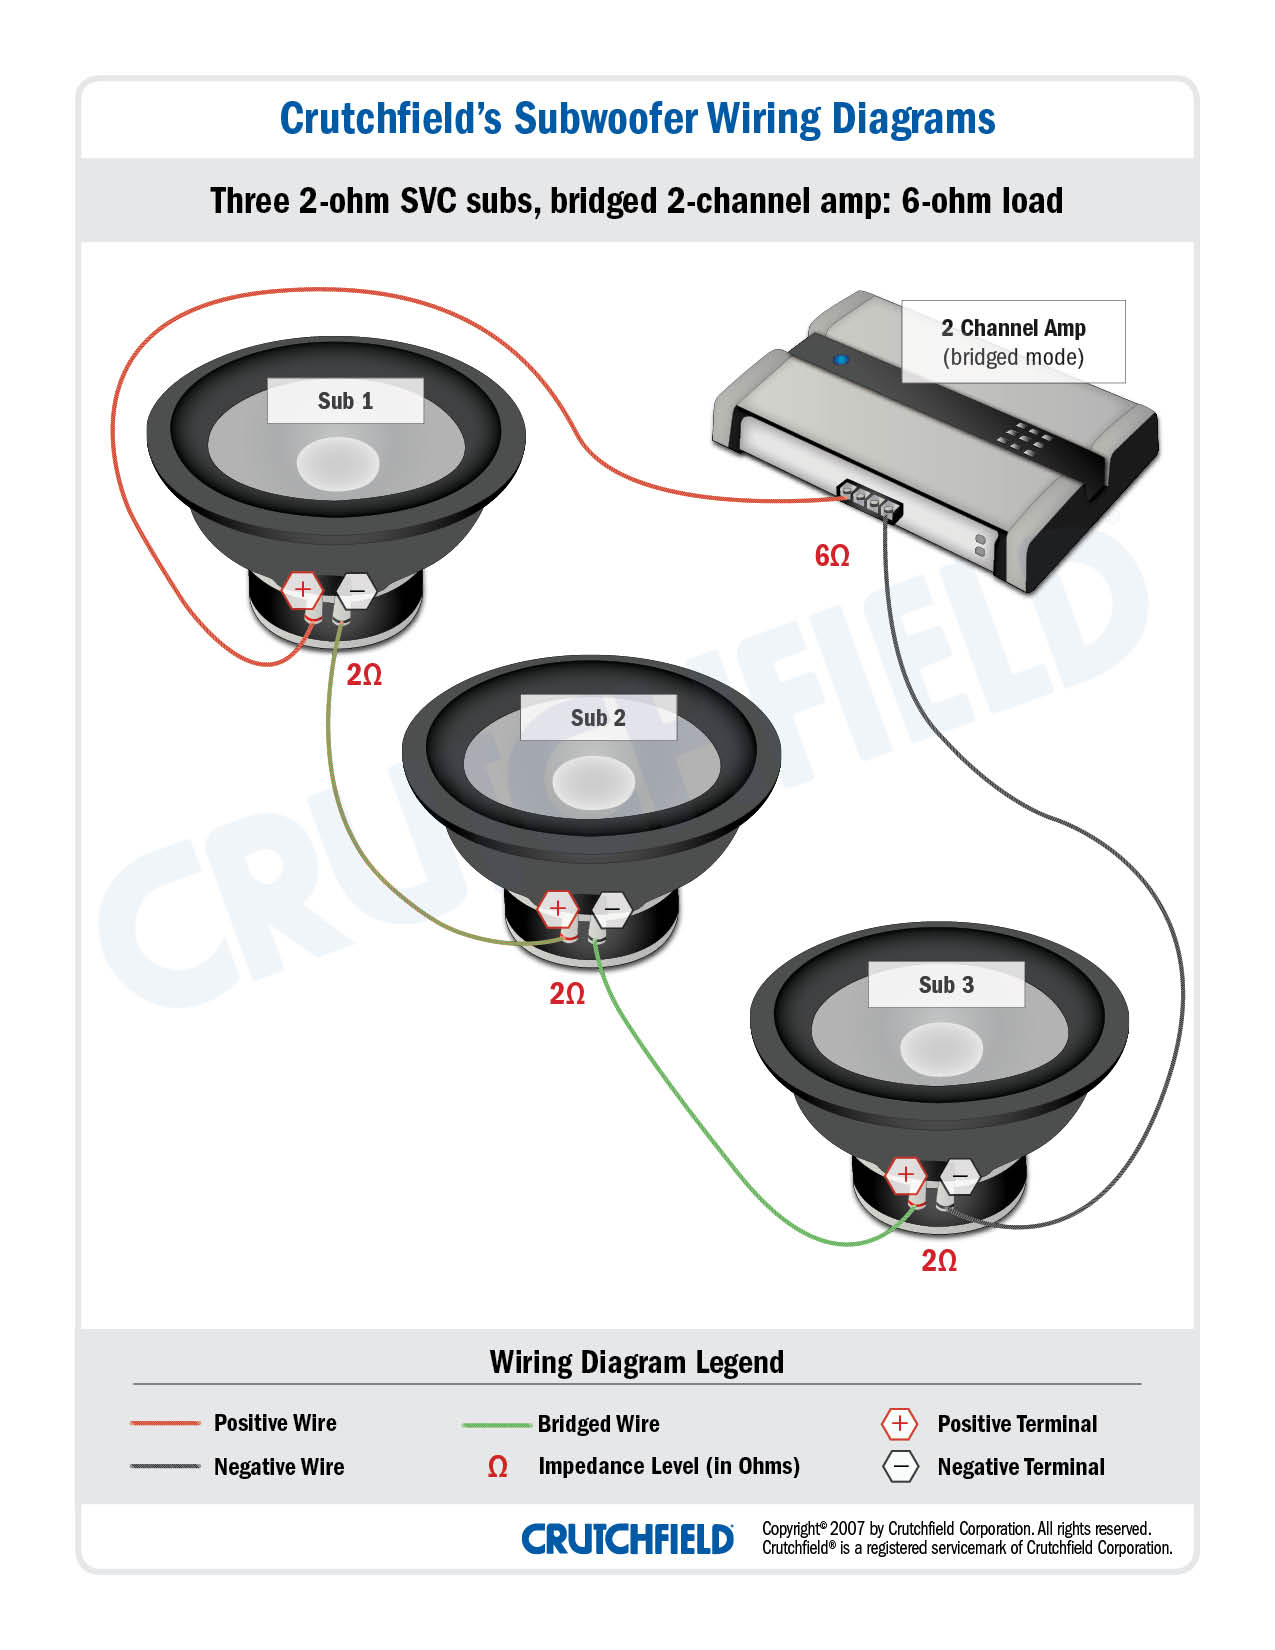 subwoofer wiring diagrams rh crutchfield com car subwoofer wiring diagram Subwoofer Speaker Wiring Diagram